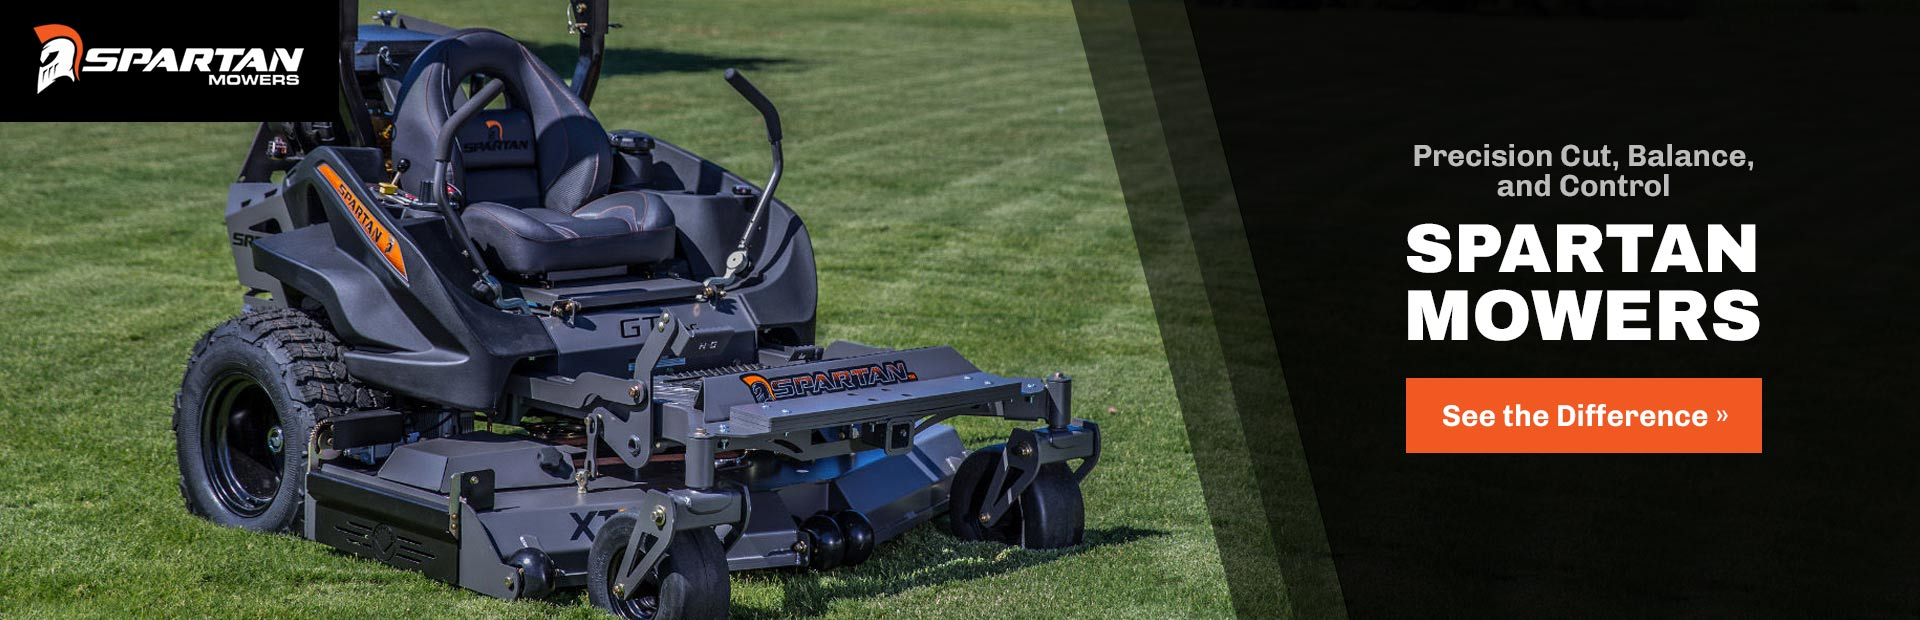 Spartan Lawn Mowers: Click here to view the models.